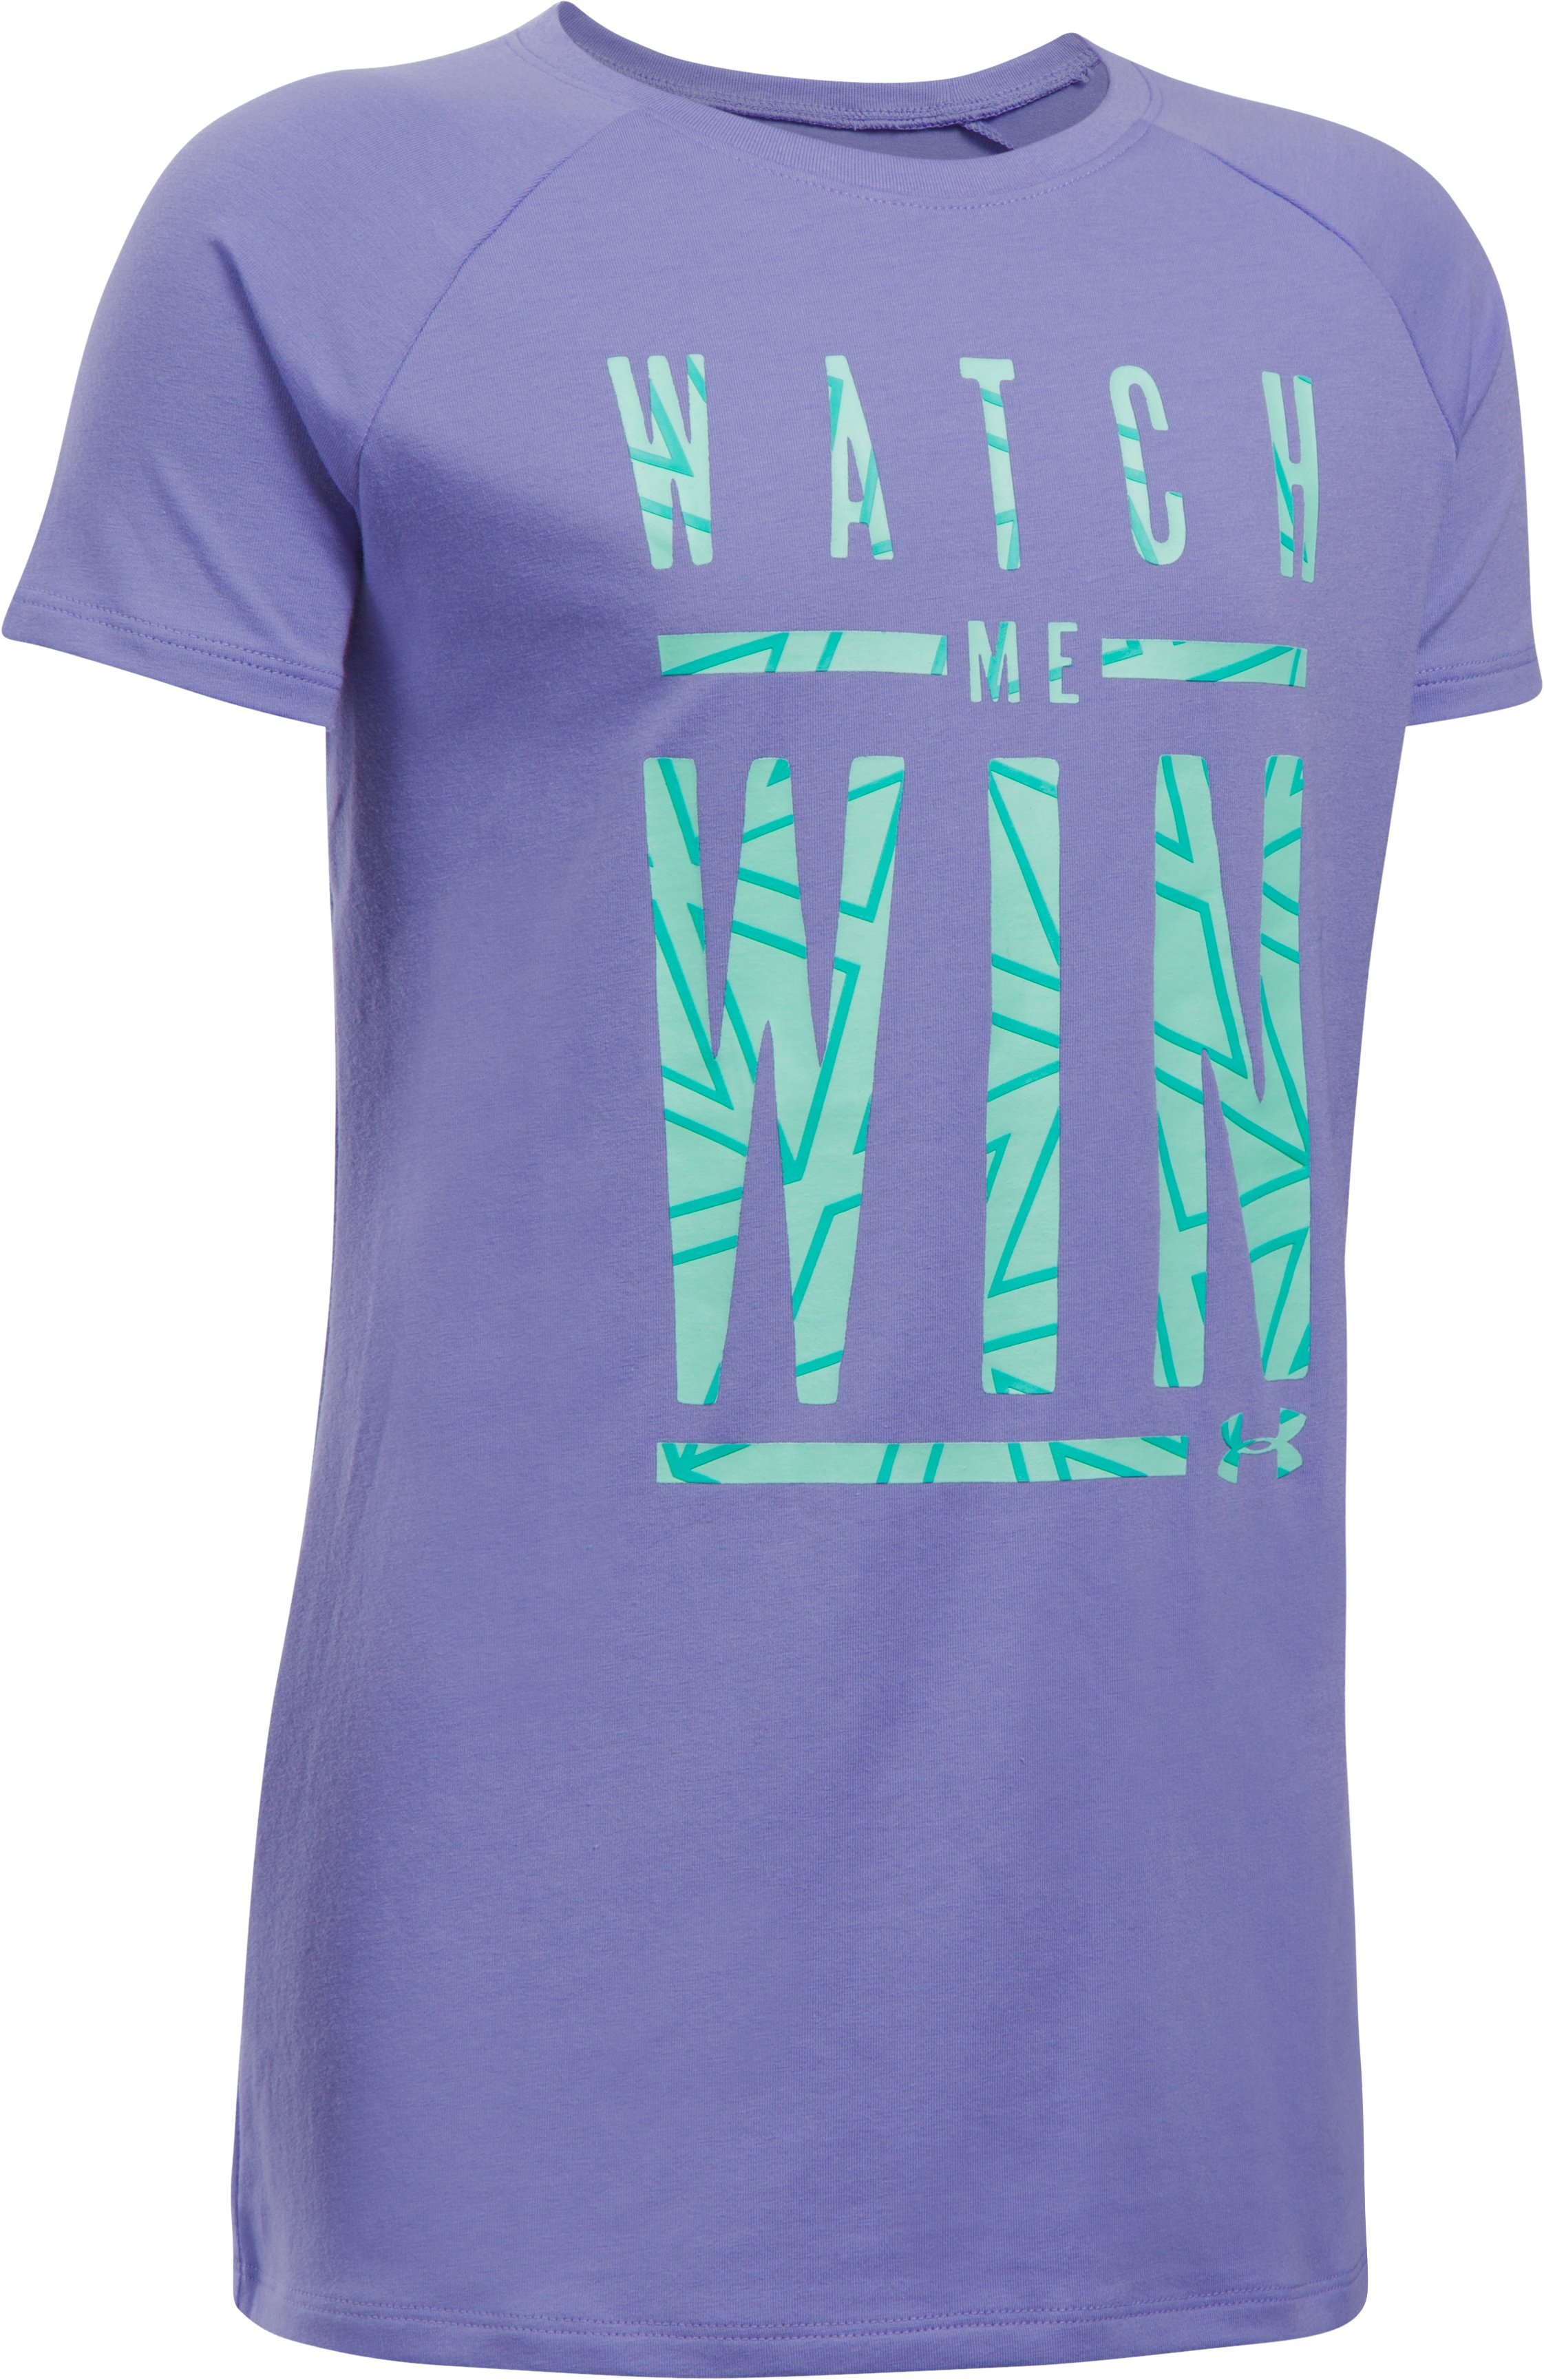 Girls' UA Watch Me Win T-Shirt, FLAX, undefined